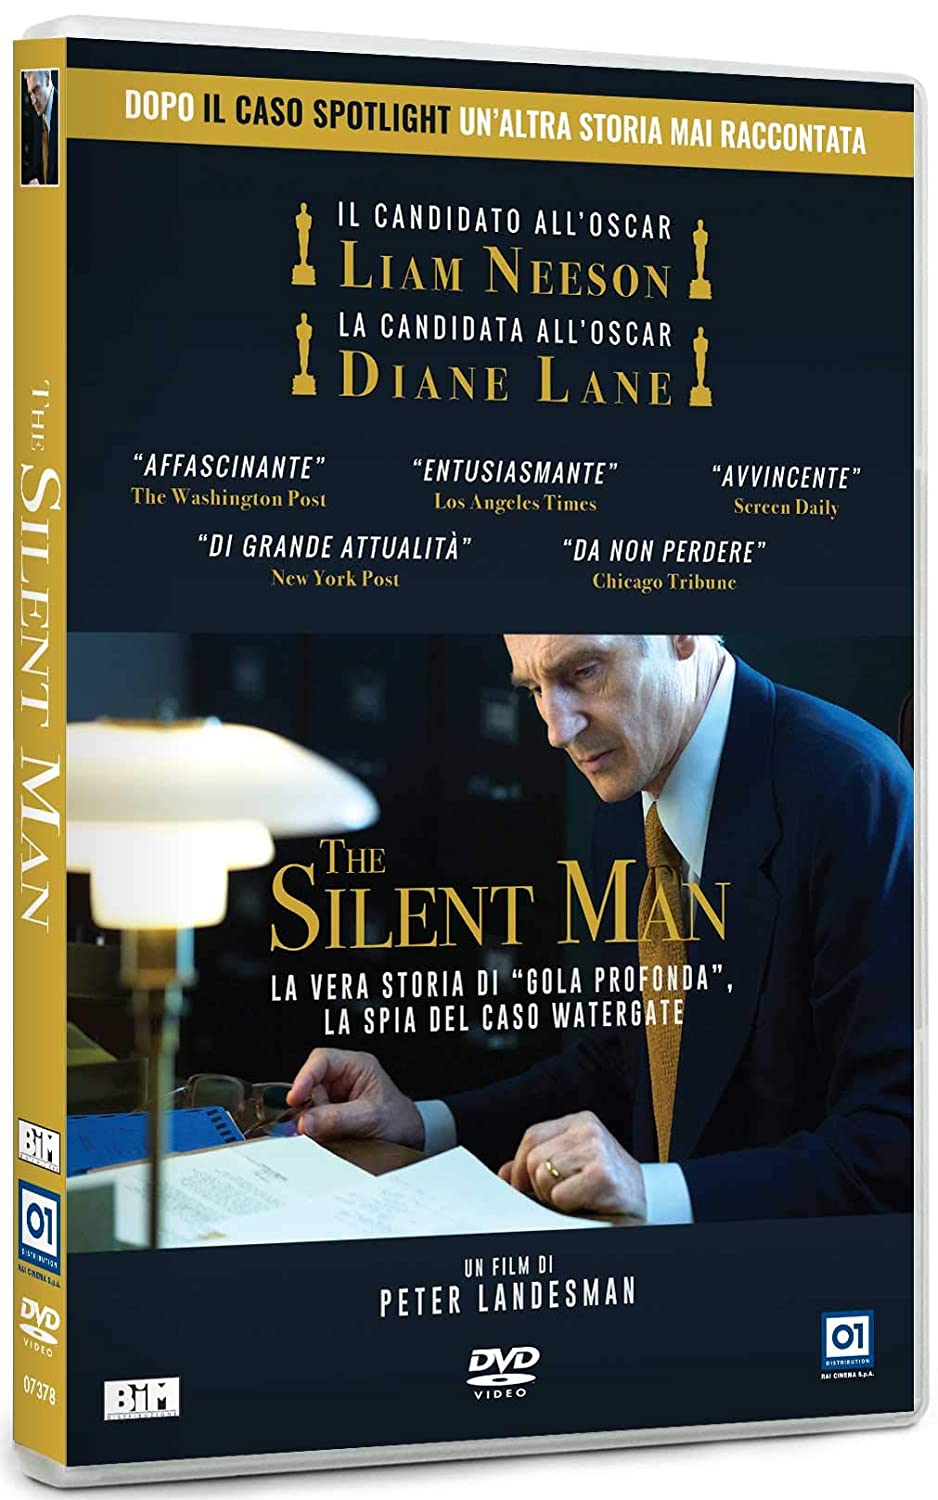 THE SILENT MAN (DVD)